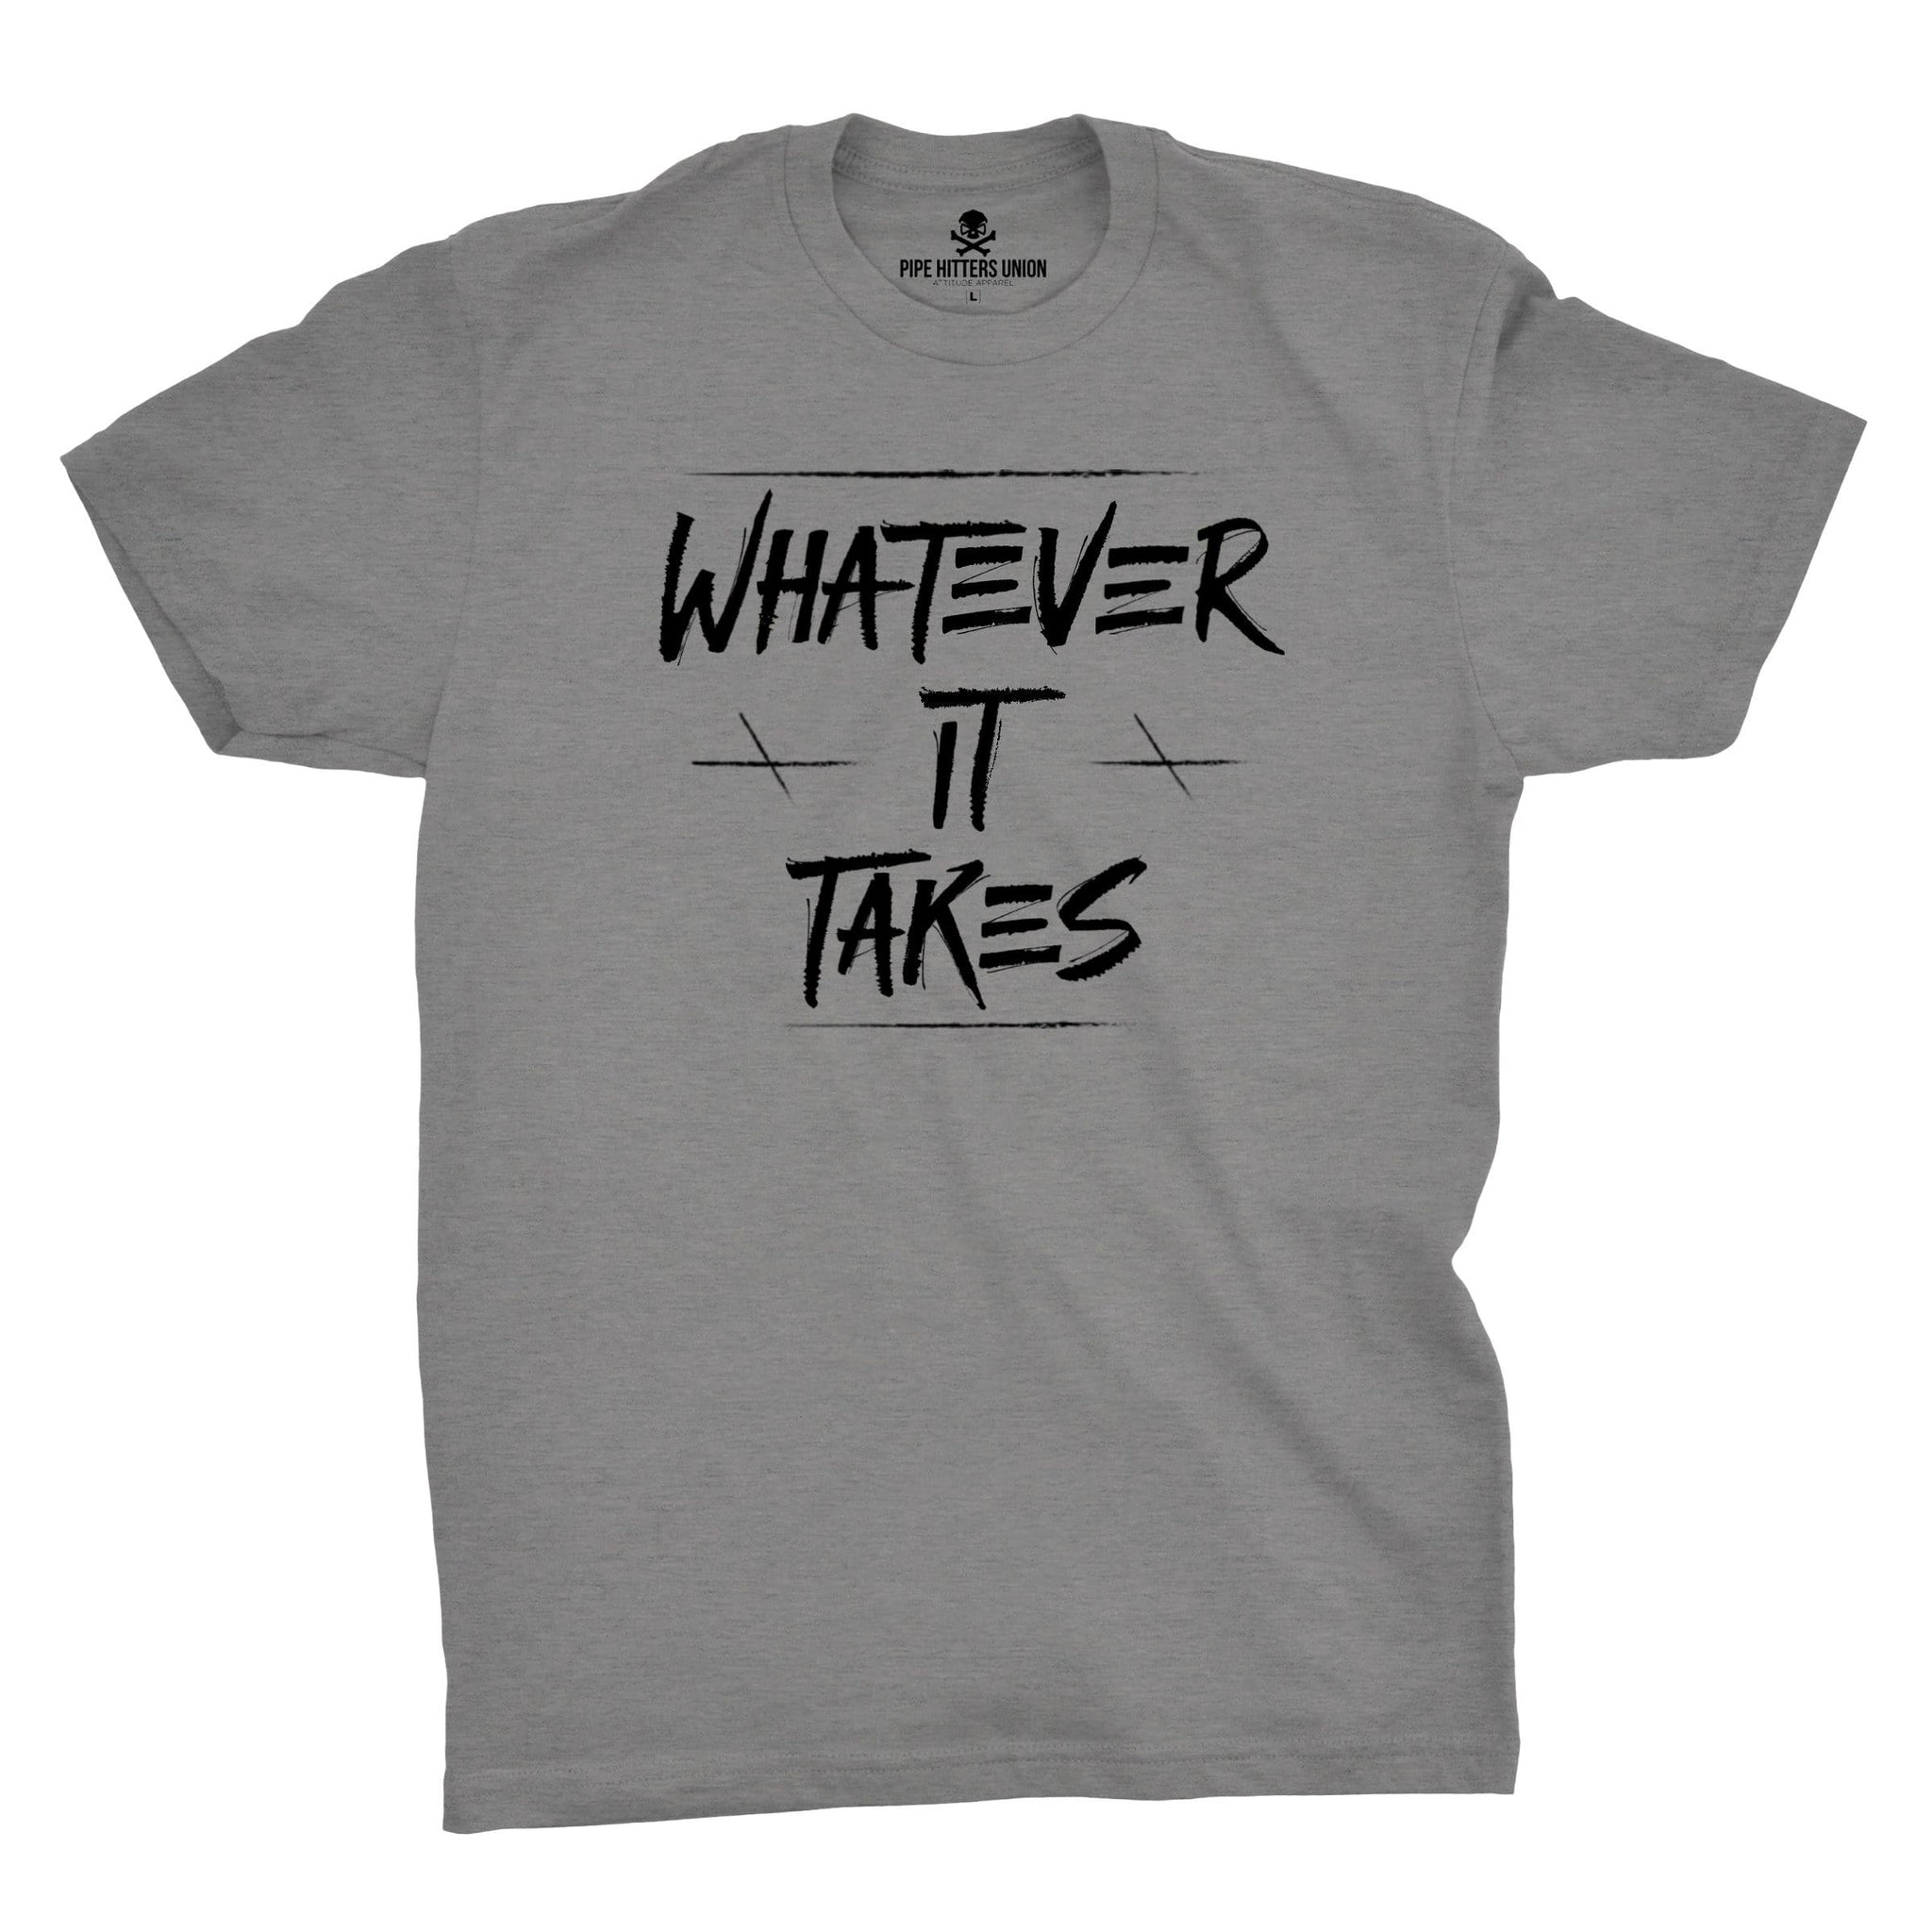 Whatever It Takes - Grey - T-Shirts - Pipe Hitters Union